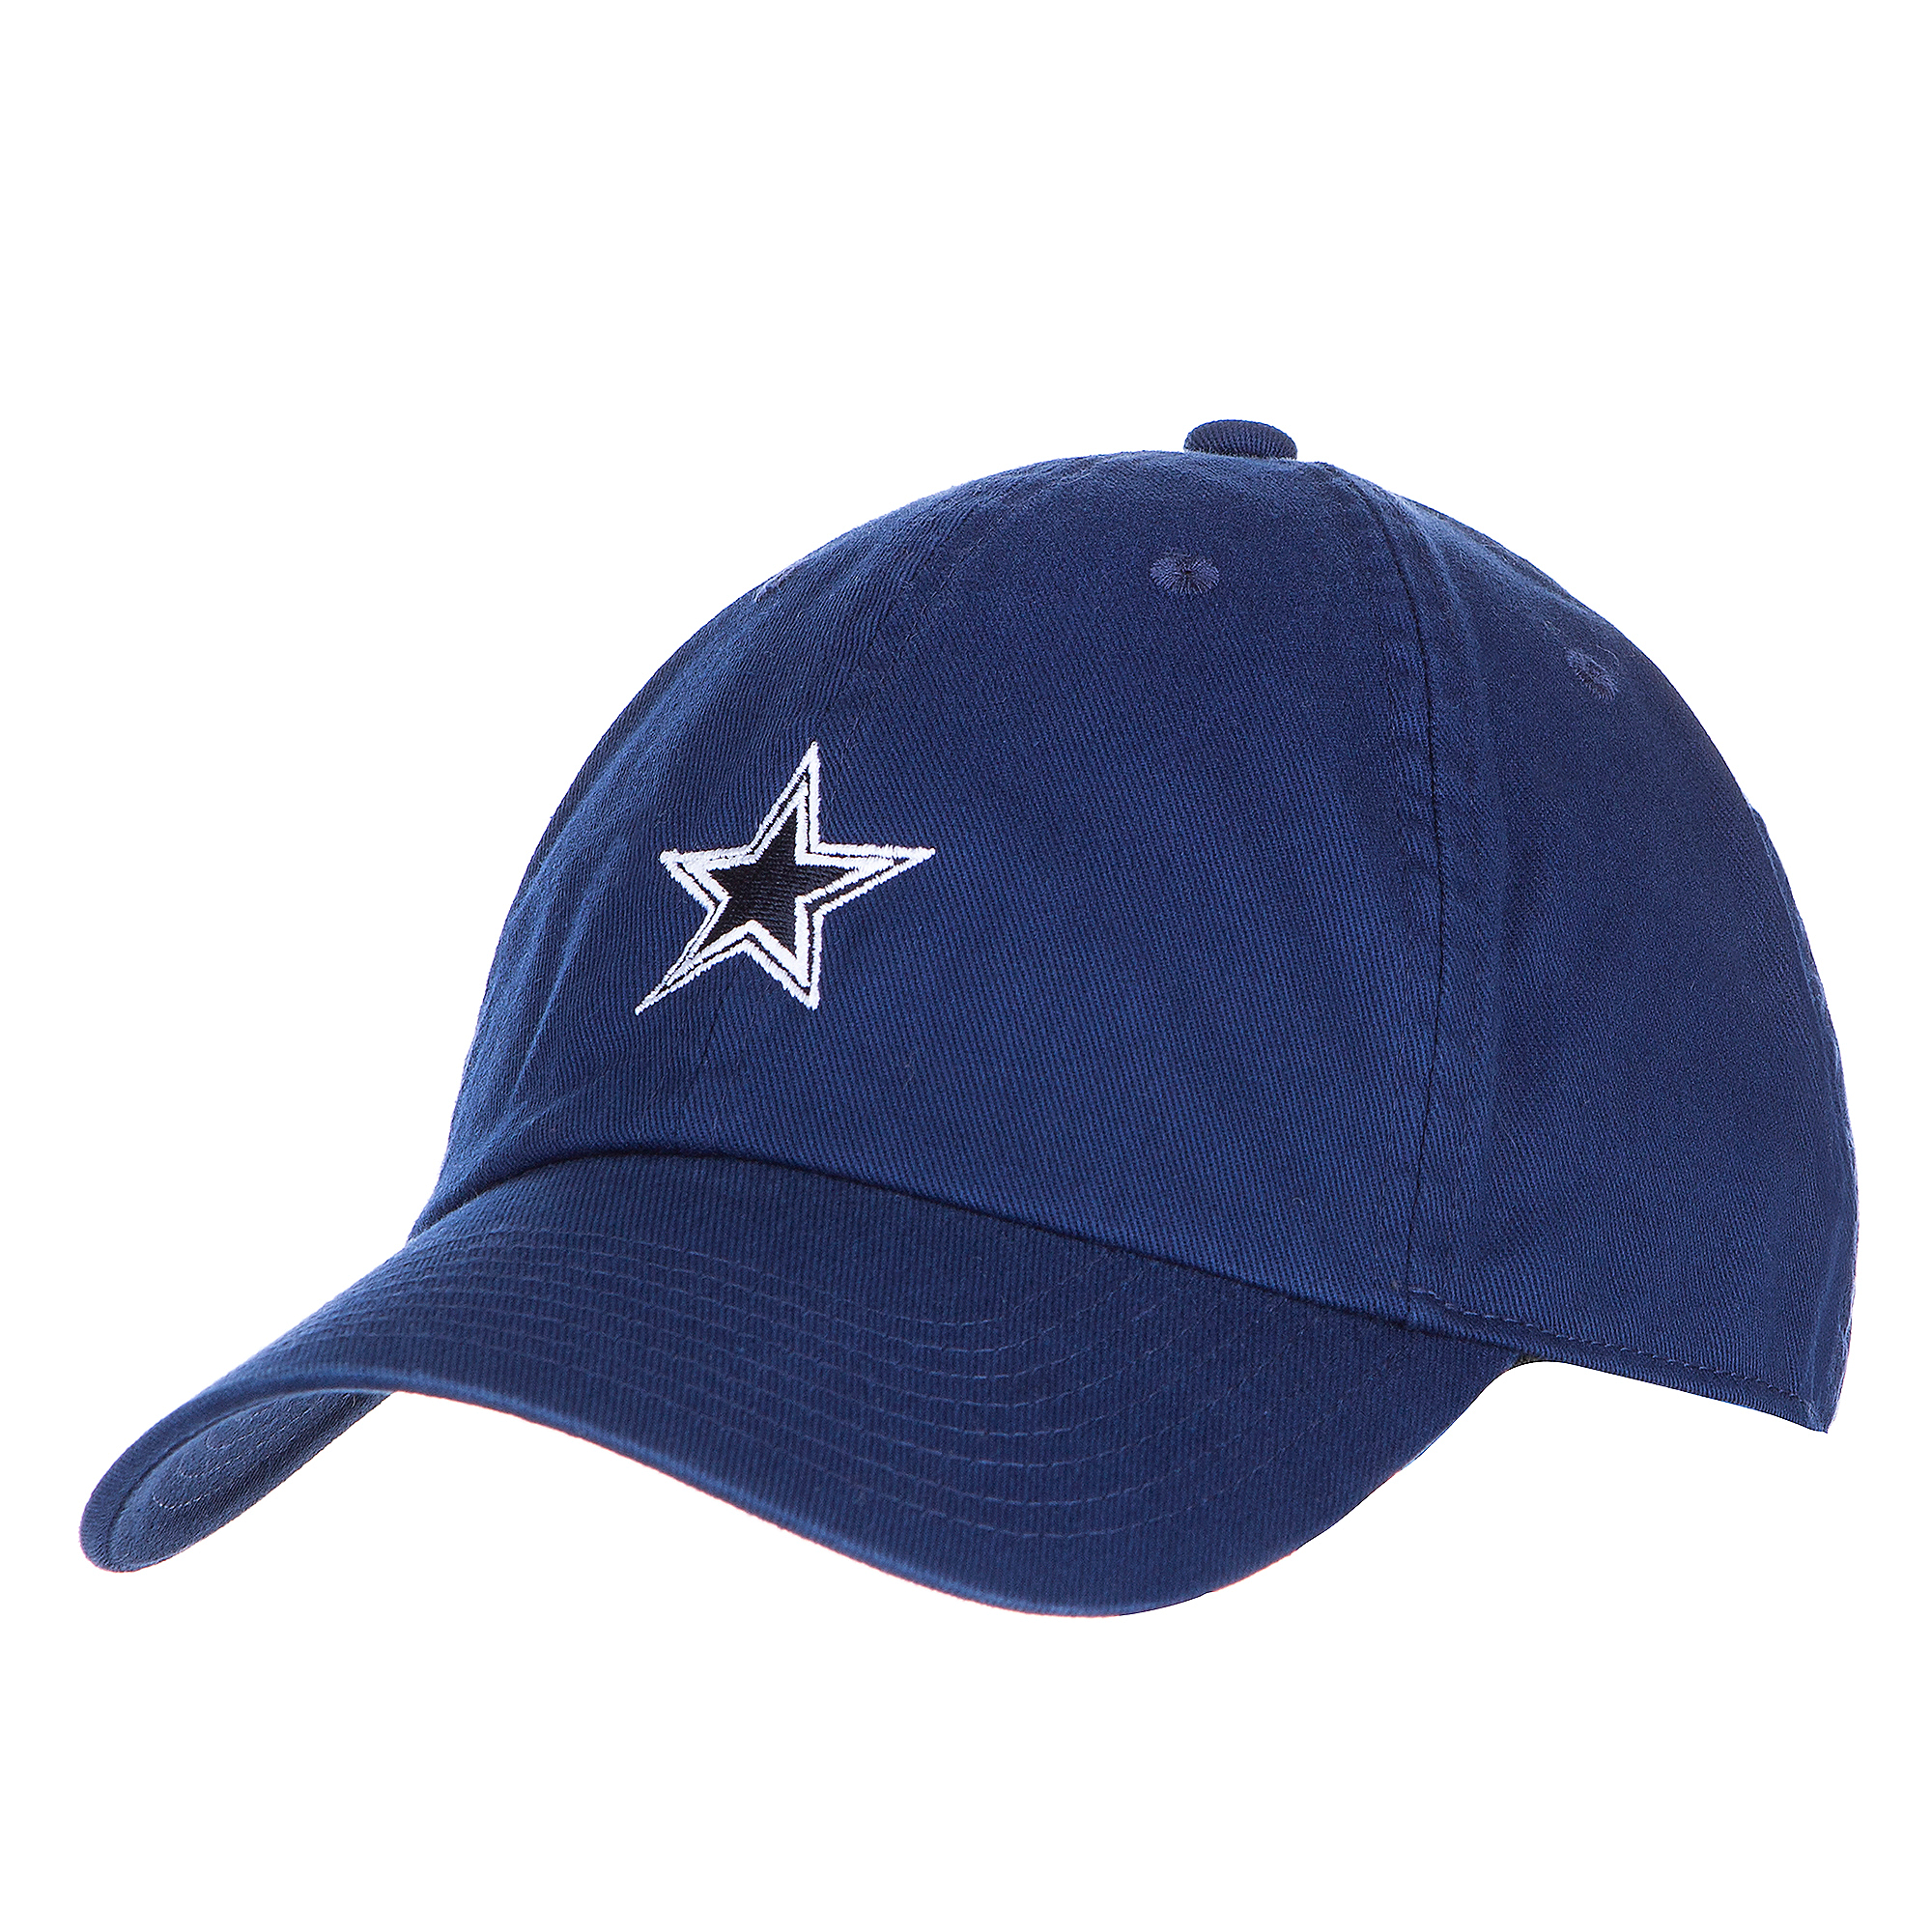 Dallas Cowboys Nike Heritage86 Womens Navy Washed Hat